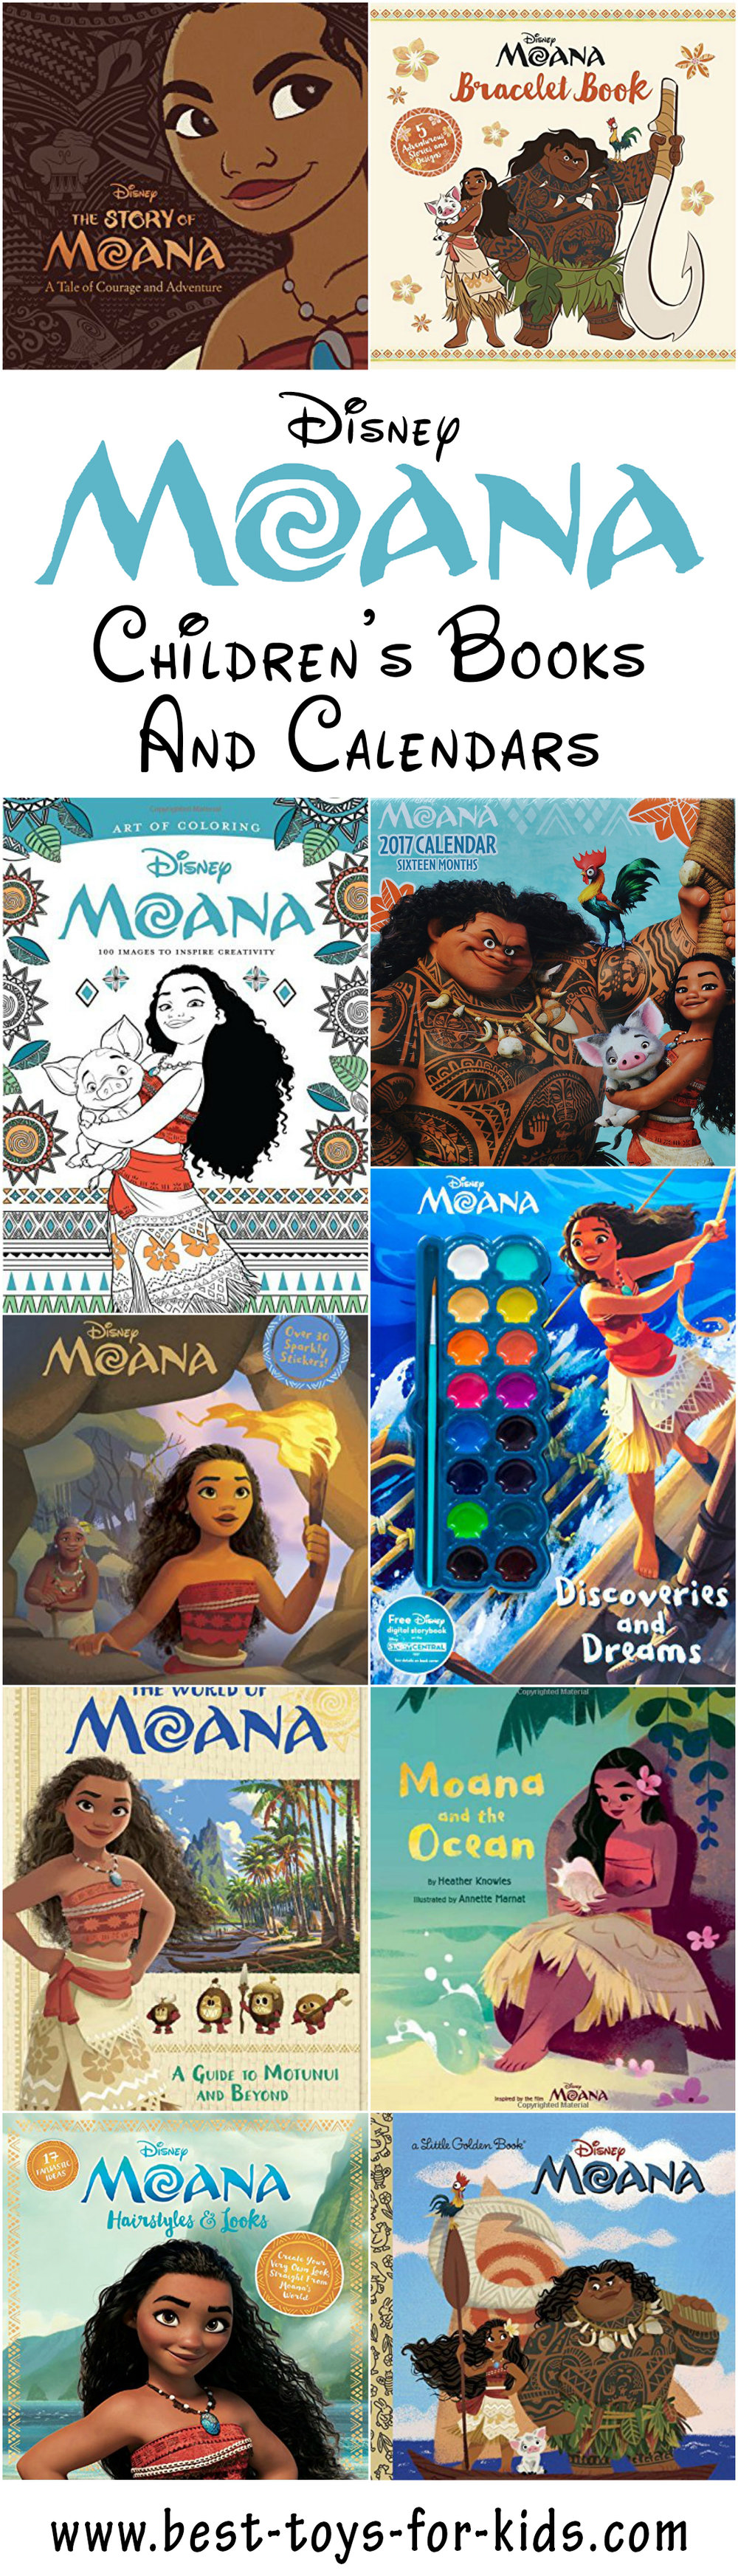 disney-moana-childrens-books-calendars